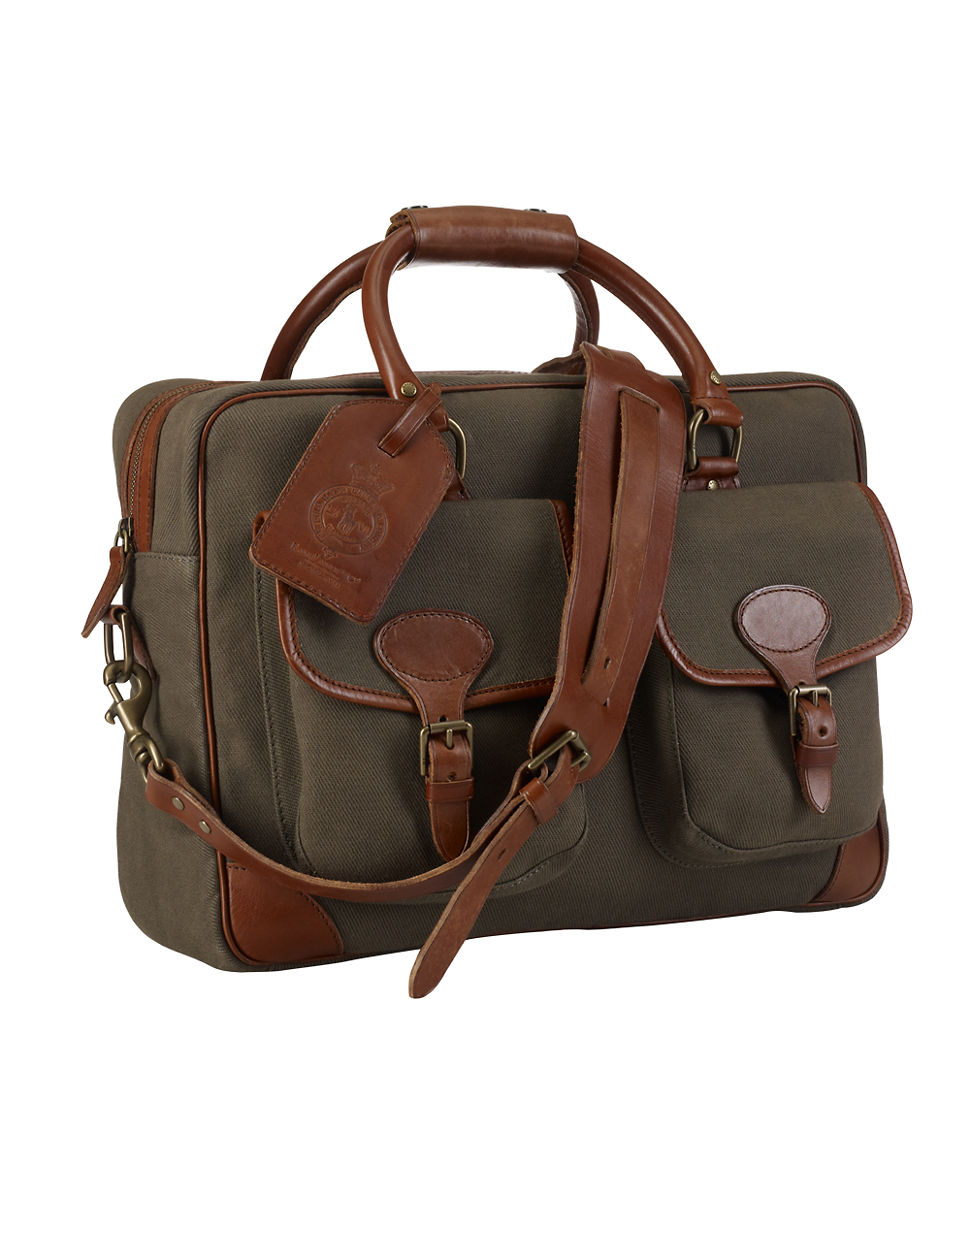 Lyst - Polo Ralph Lauren Canvas Leather Commuter Bag in Natural for Men b86256aafc